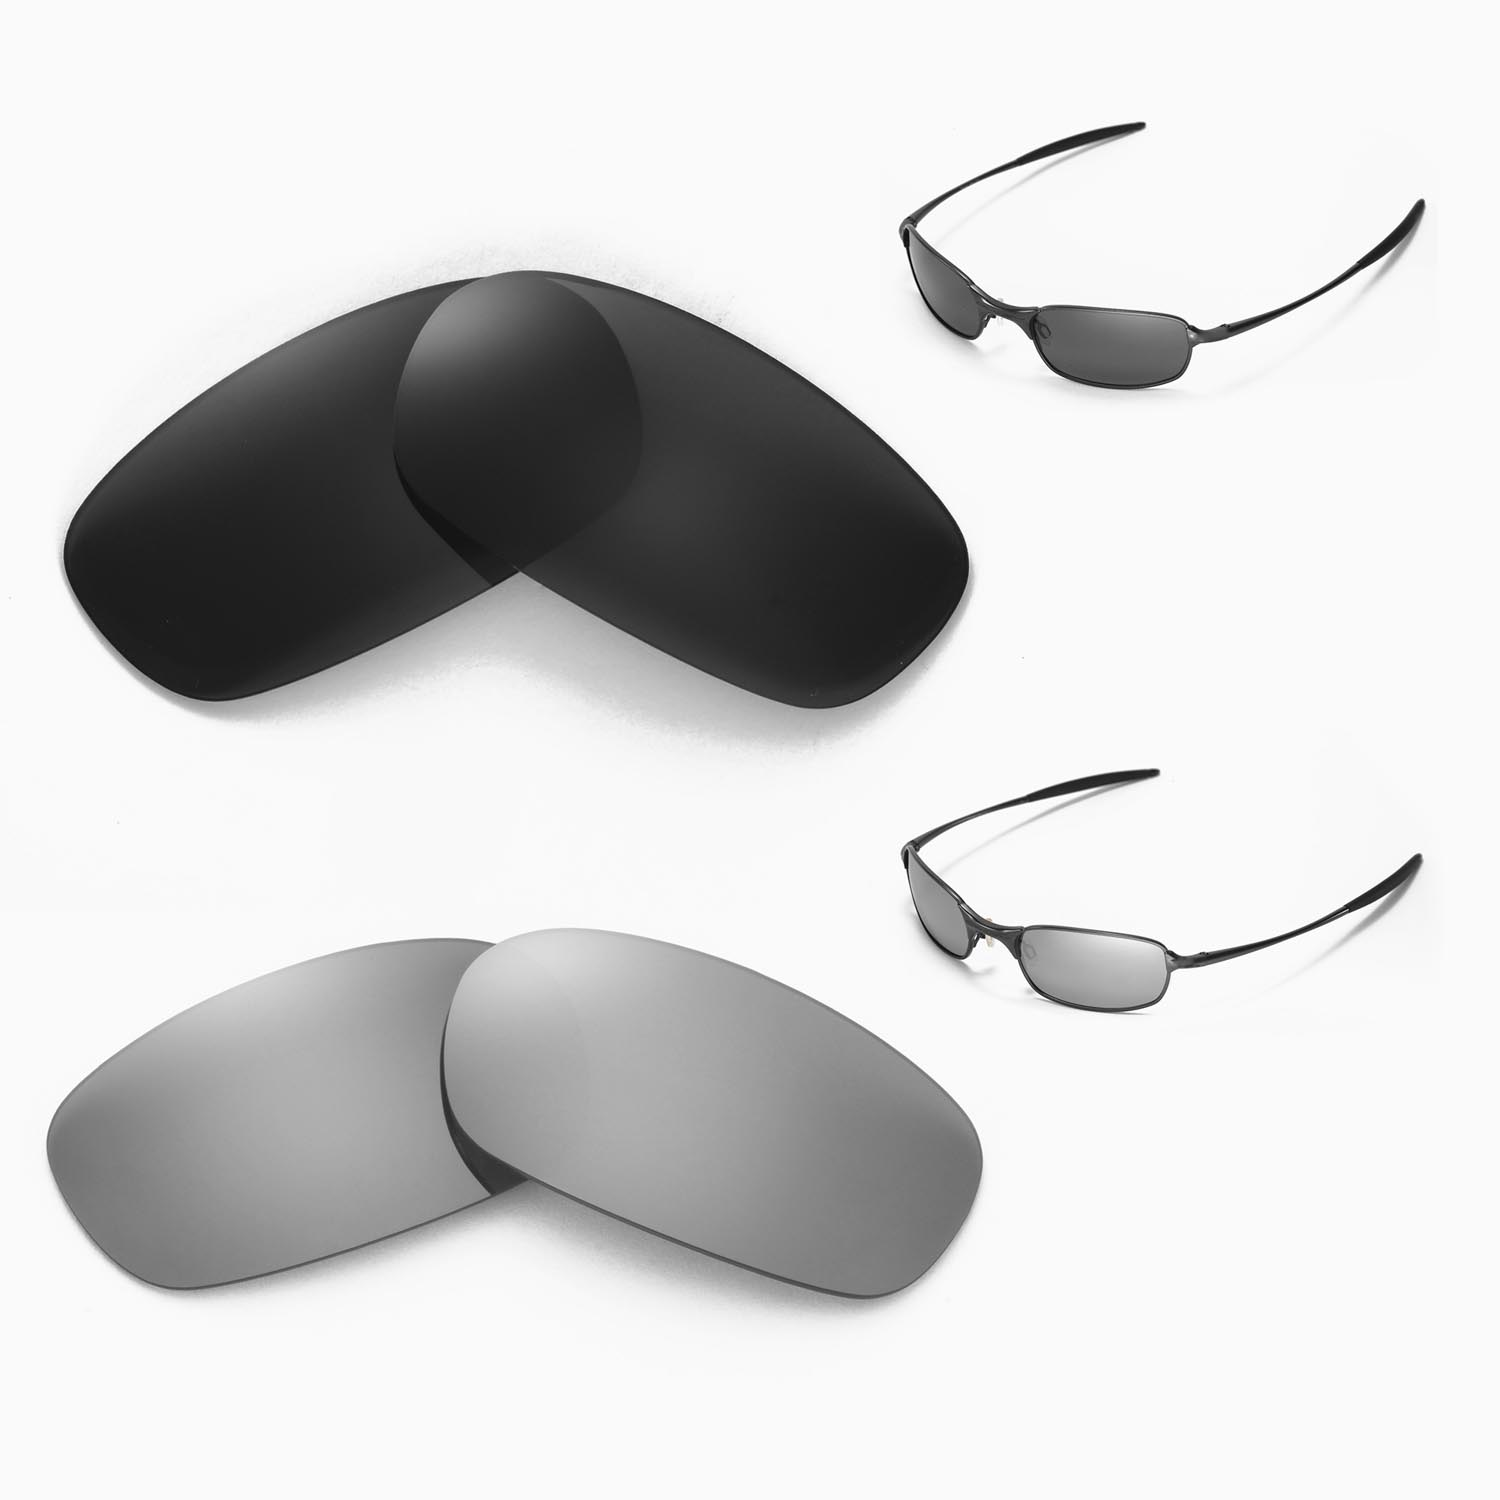 do oakley glasses come with a case  new walleva polarized black + titanium lenses for oakley square wire 2.0